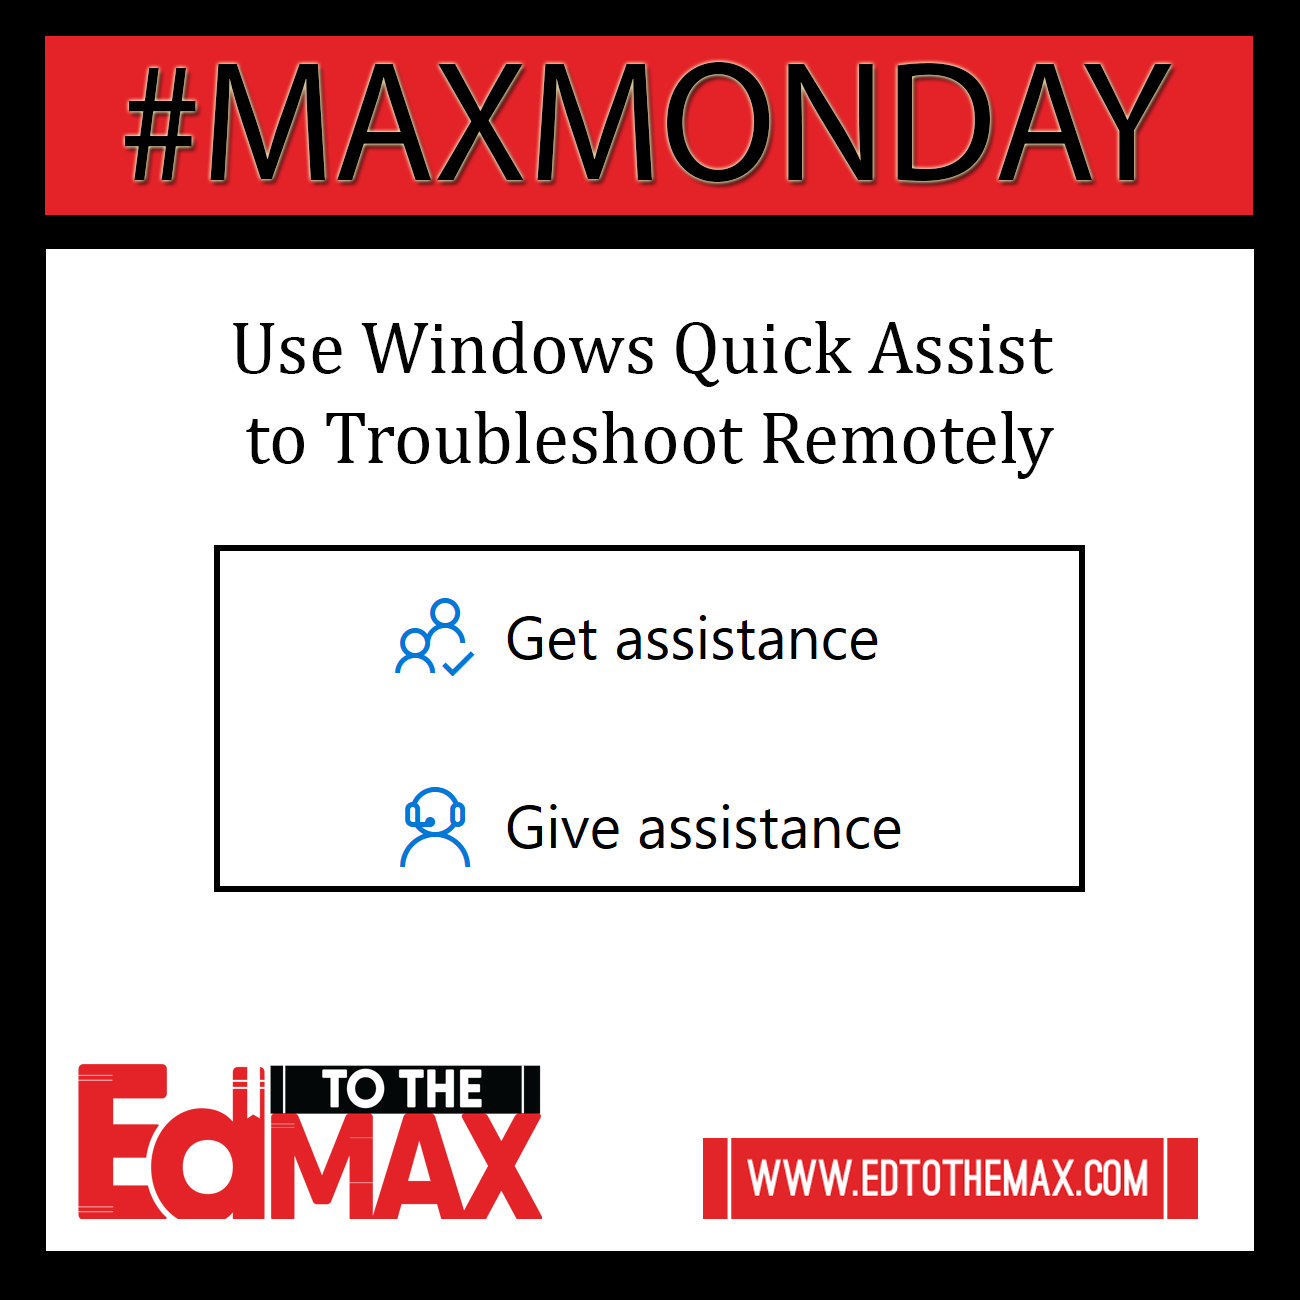 Use Windows Quick Assist to Troubleshoot Remotely